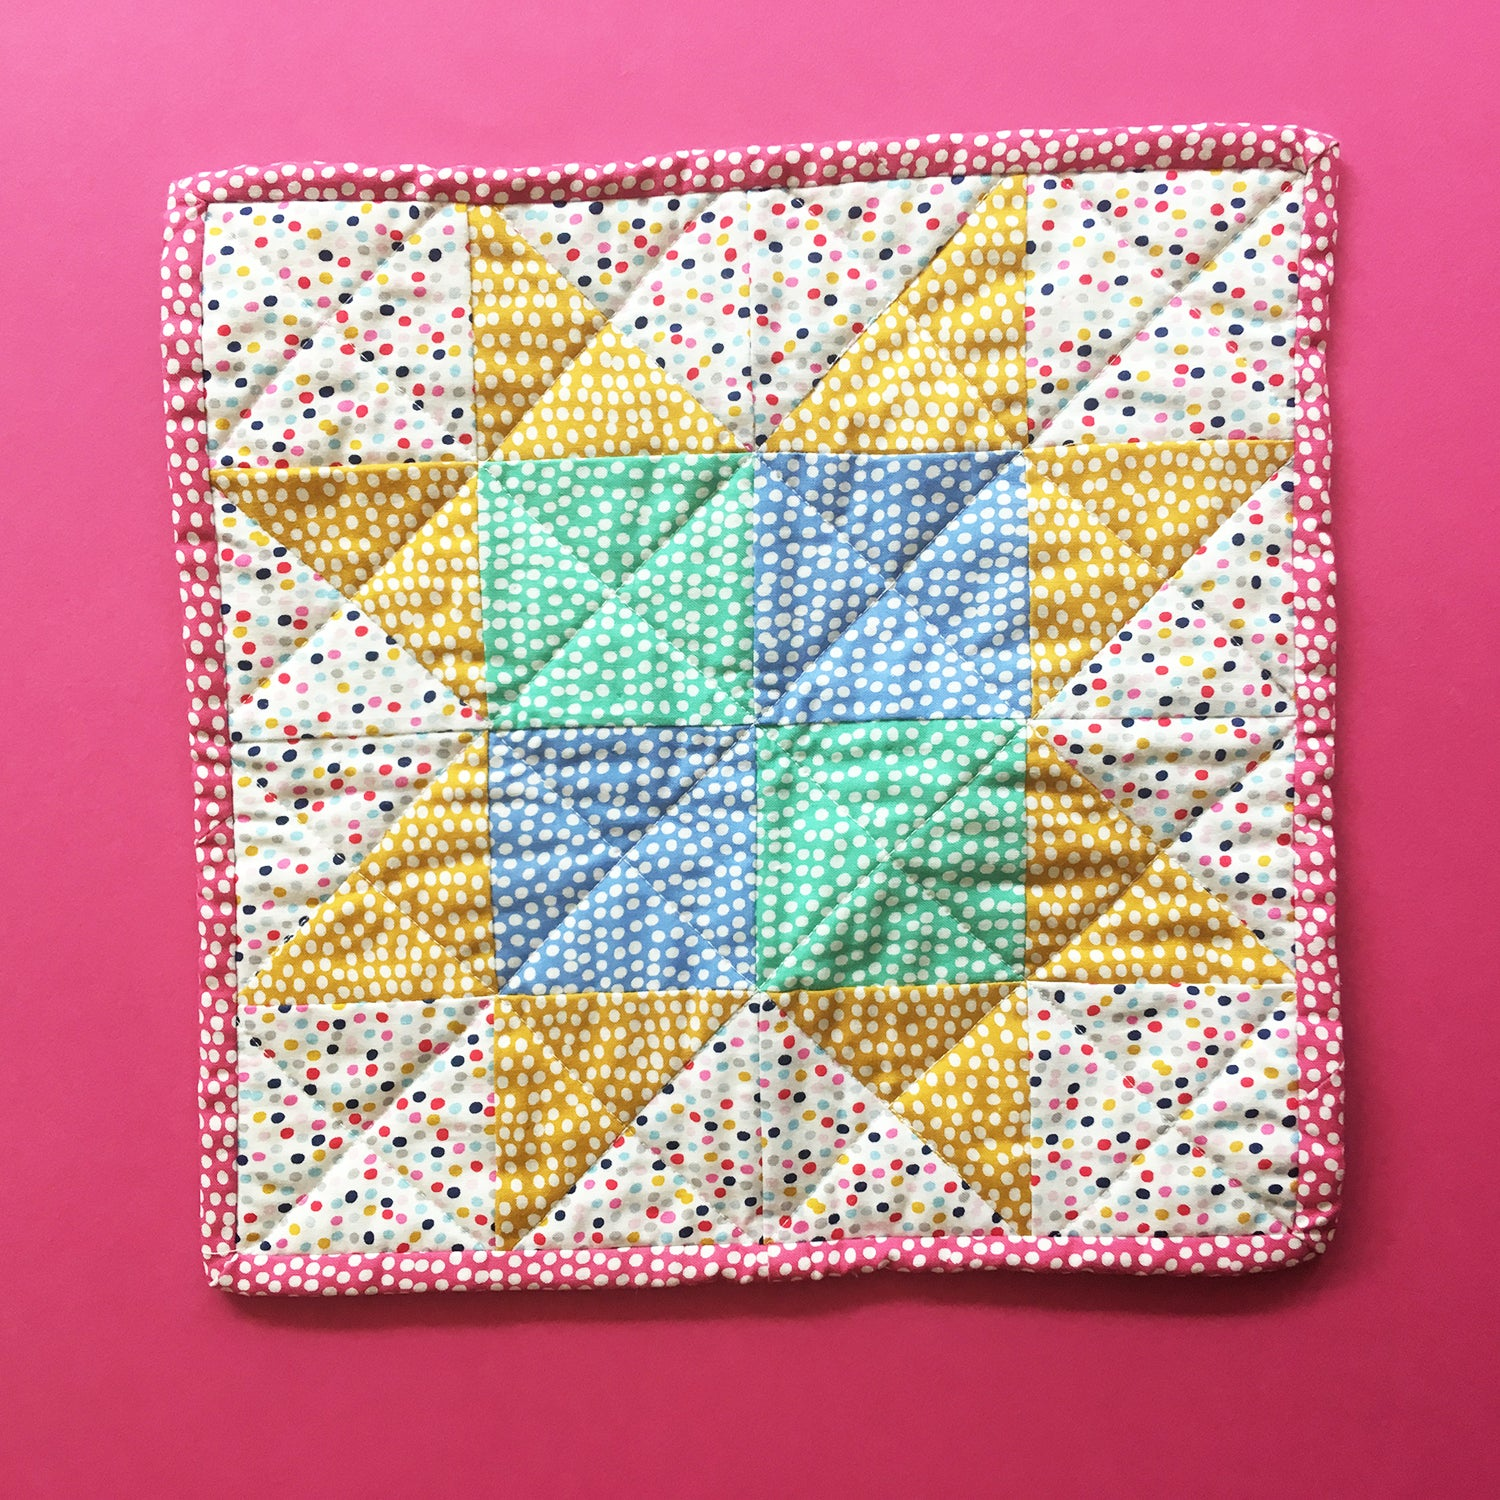 Sewing: Beyond Basics Patchwork - The York Makery